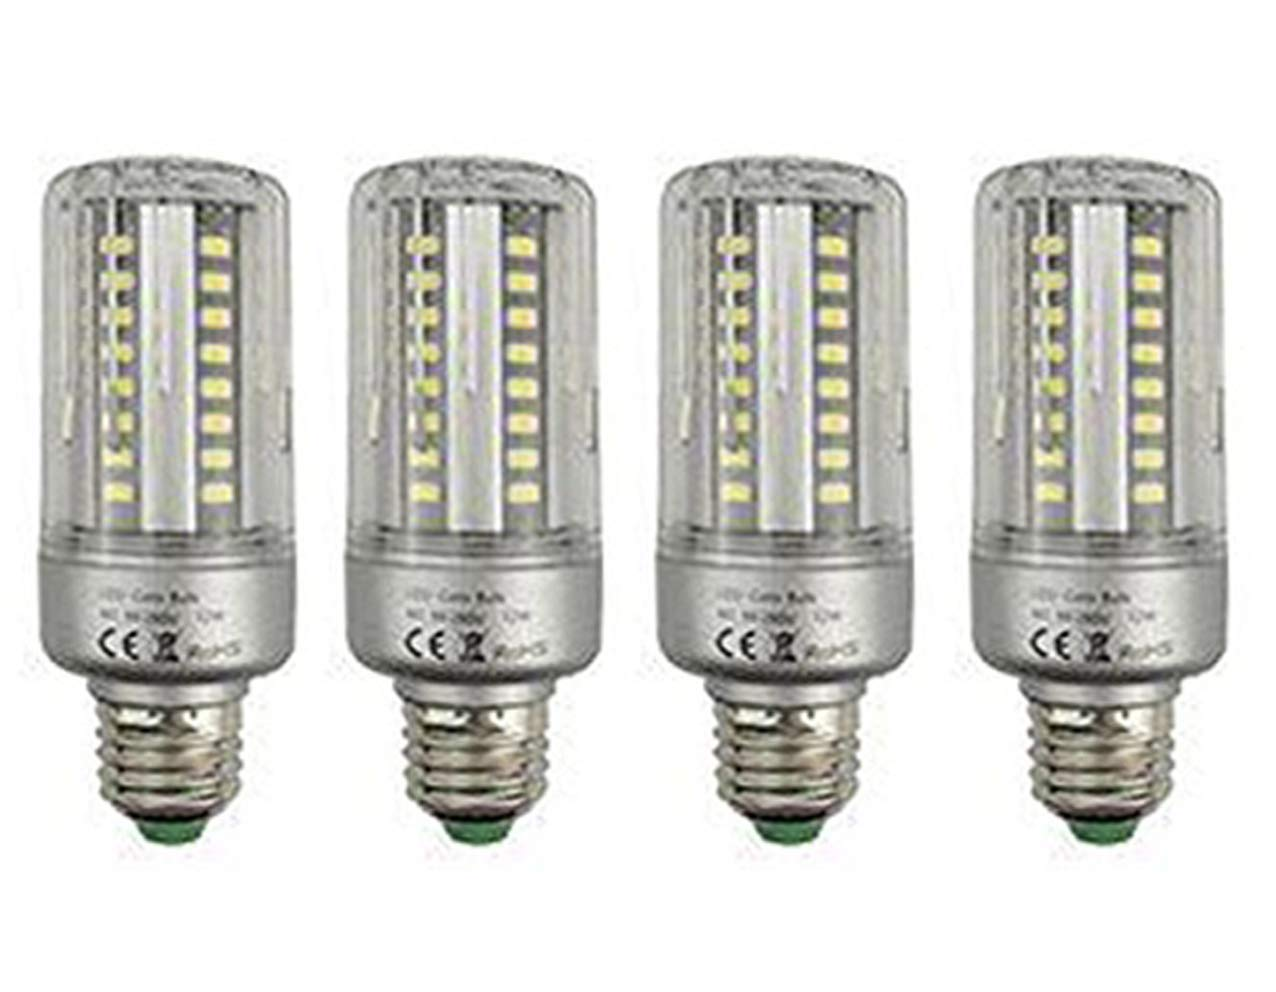 CTKcom 5W LED Bulbs Corn Light Bulb(4 Pack)- E26/E27 Corn Bulbs Daylight White 6000K,400LM,50 Watt Light Bulbs Equivalent For Home Garage Warehouse Barn Porch Backyard Garden Lighting,AC85-265V